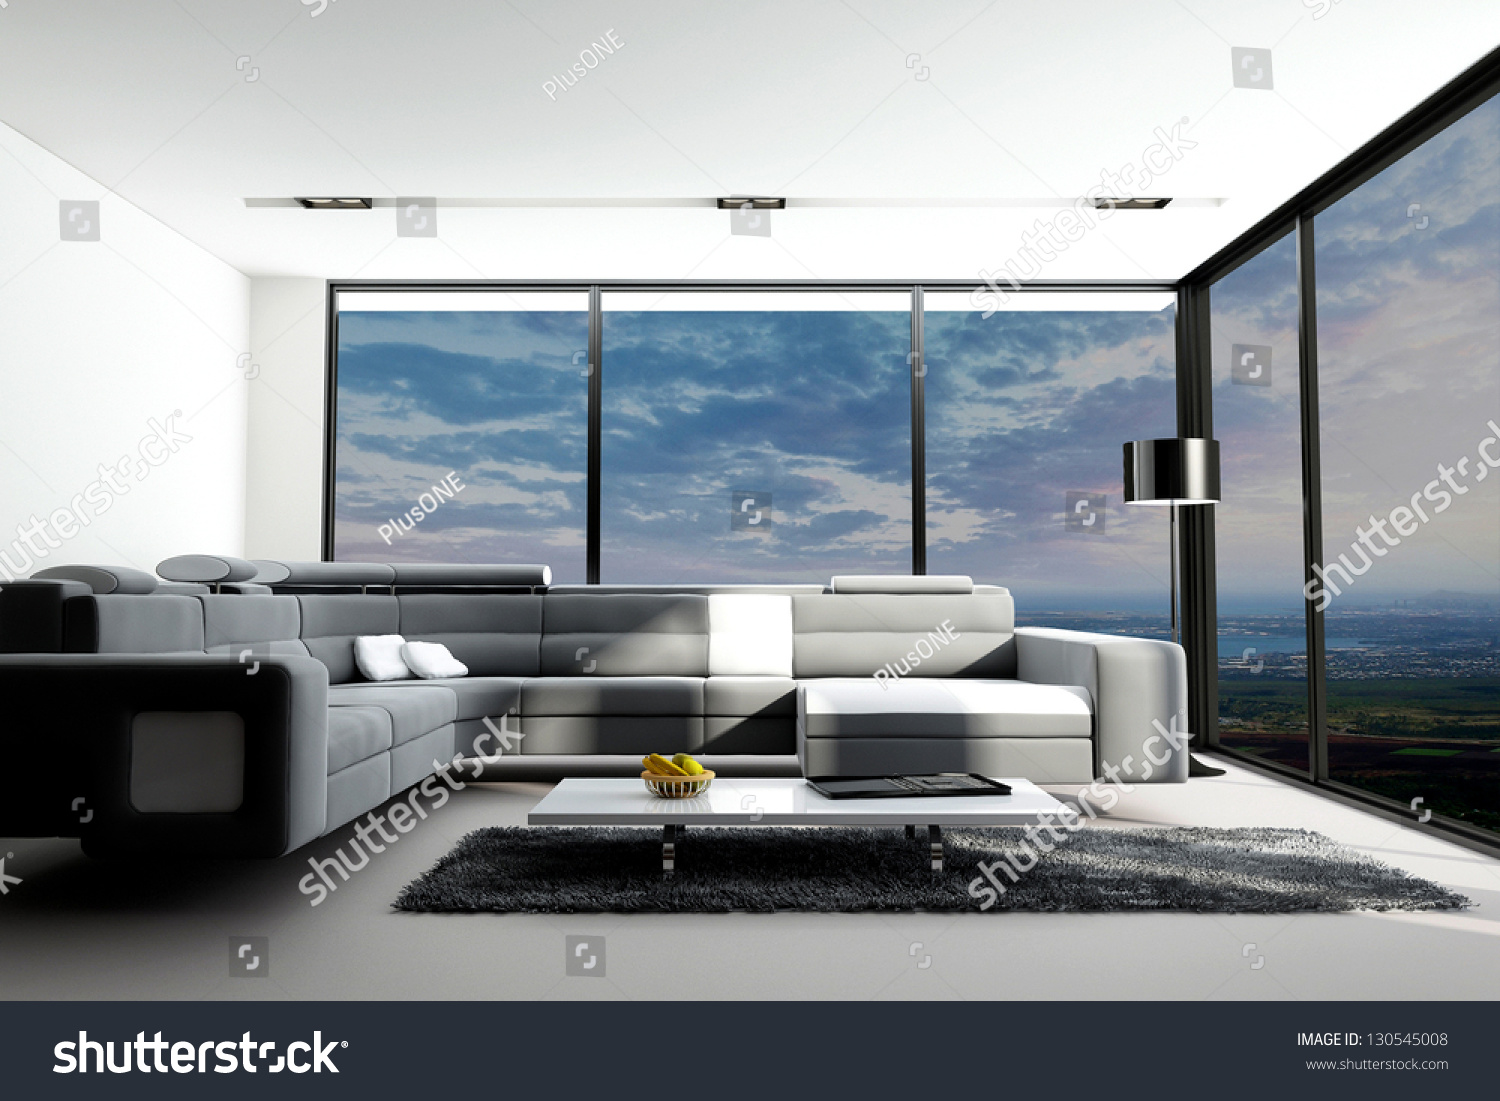 Living room with landscape view 3d interior architecture for Living room 3d view